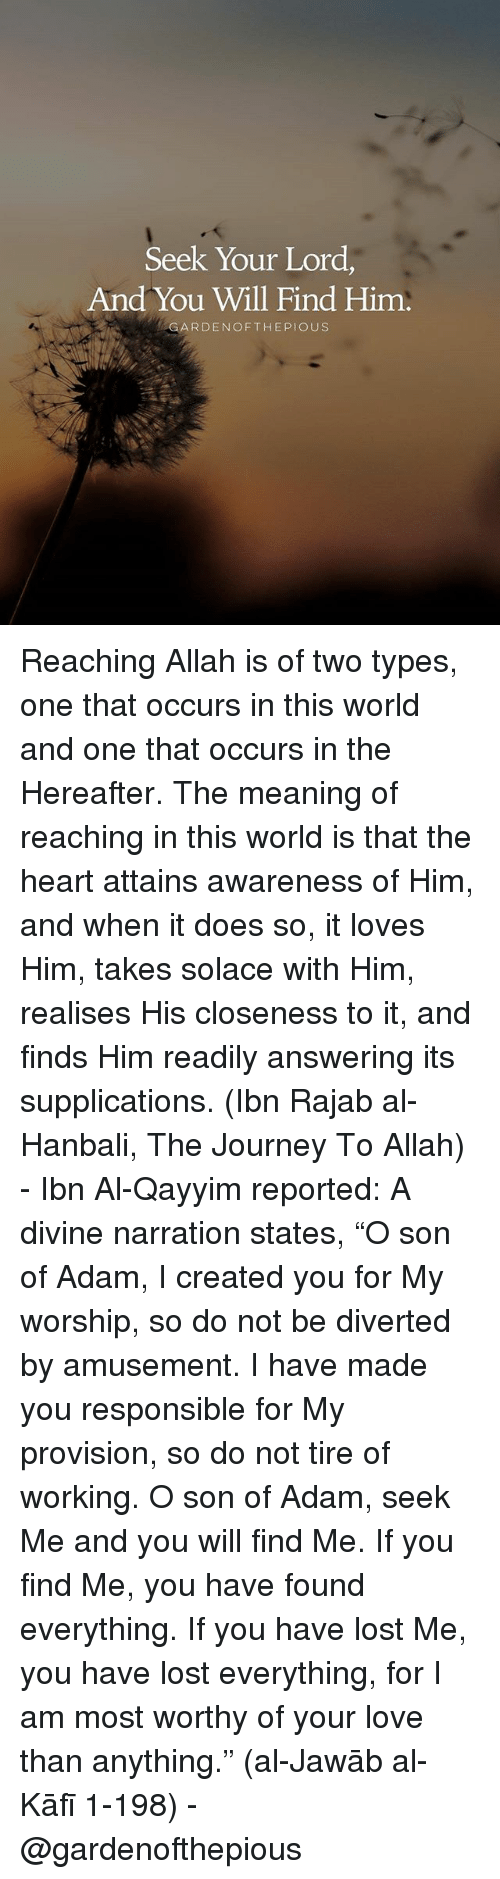 """Journey, Love, and Memes: Seek Your Lord,  And You Will Find Him.  GARDENOFTHEPIOUS Reaching Allah is of two types, one that occurs in this world and one that occurs in the Hereafter. The meaning of reaching in this world is that the heart attains awareness of Him, and when it does so, it loves Him, takes solace with Him, realises His closeness to it, and finds Him readily answering its supplications. (Ibn Rajab al-Hanbali, The Journey To Allah) - Ibn Al-Qayyim reported: A divine narration states, """"O son of Adam, I created you for My worship, so do not be diverted by amusement. I have made you responsible for My provision, so do not tire of working. O son of Adam, seek Me and you will find Me. If you find Me, you have found everything. If you have lost Me, you have lost everything, for I am most worthy of your love than anything."""" (al-Jawāb al-Kāfī 1-198) - @gardenofthepious"""